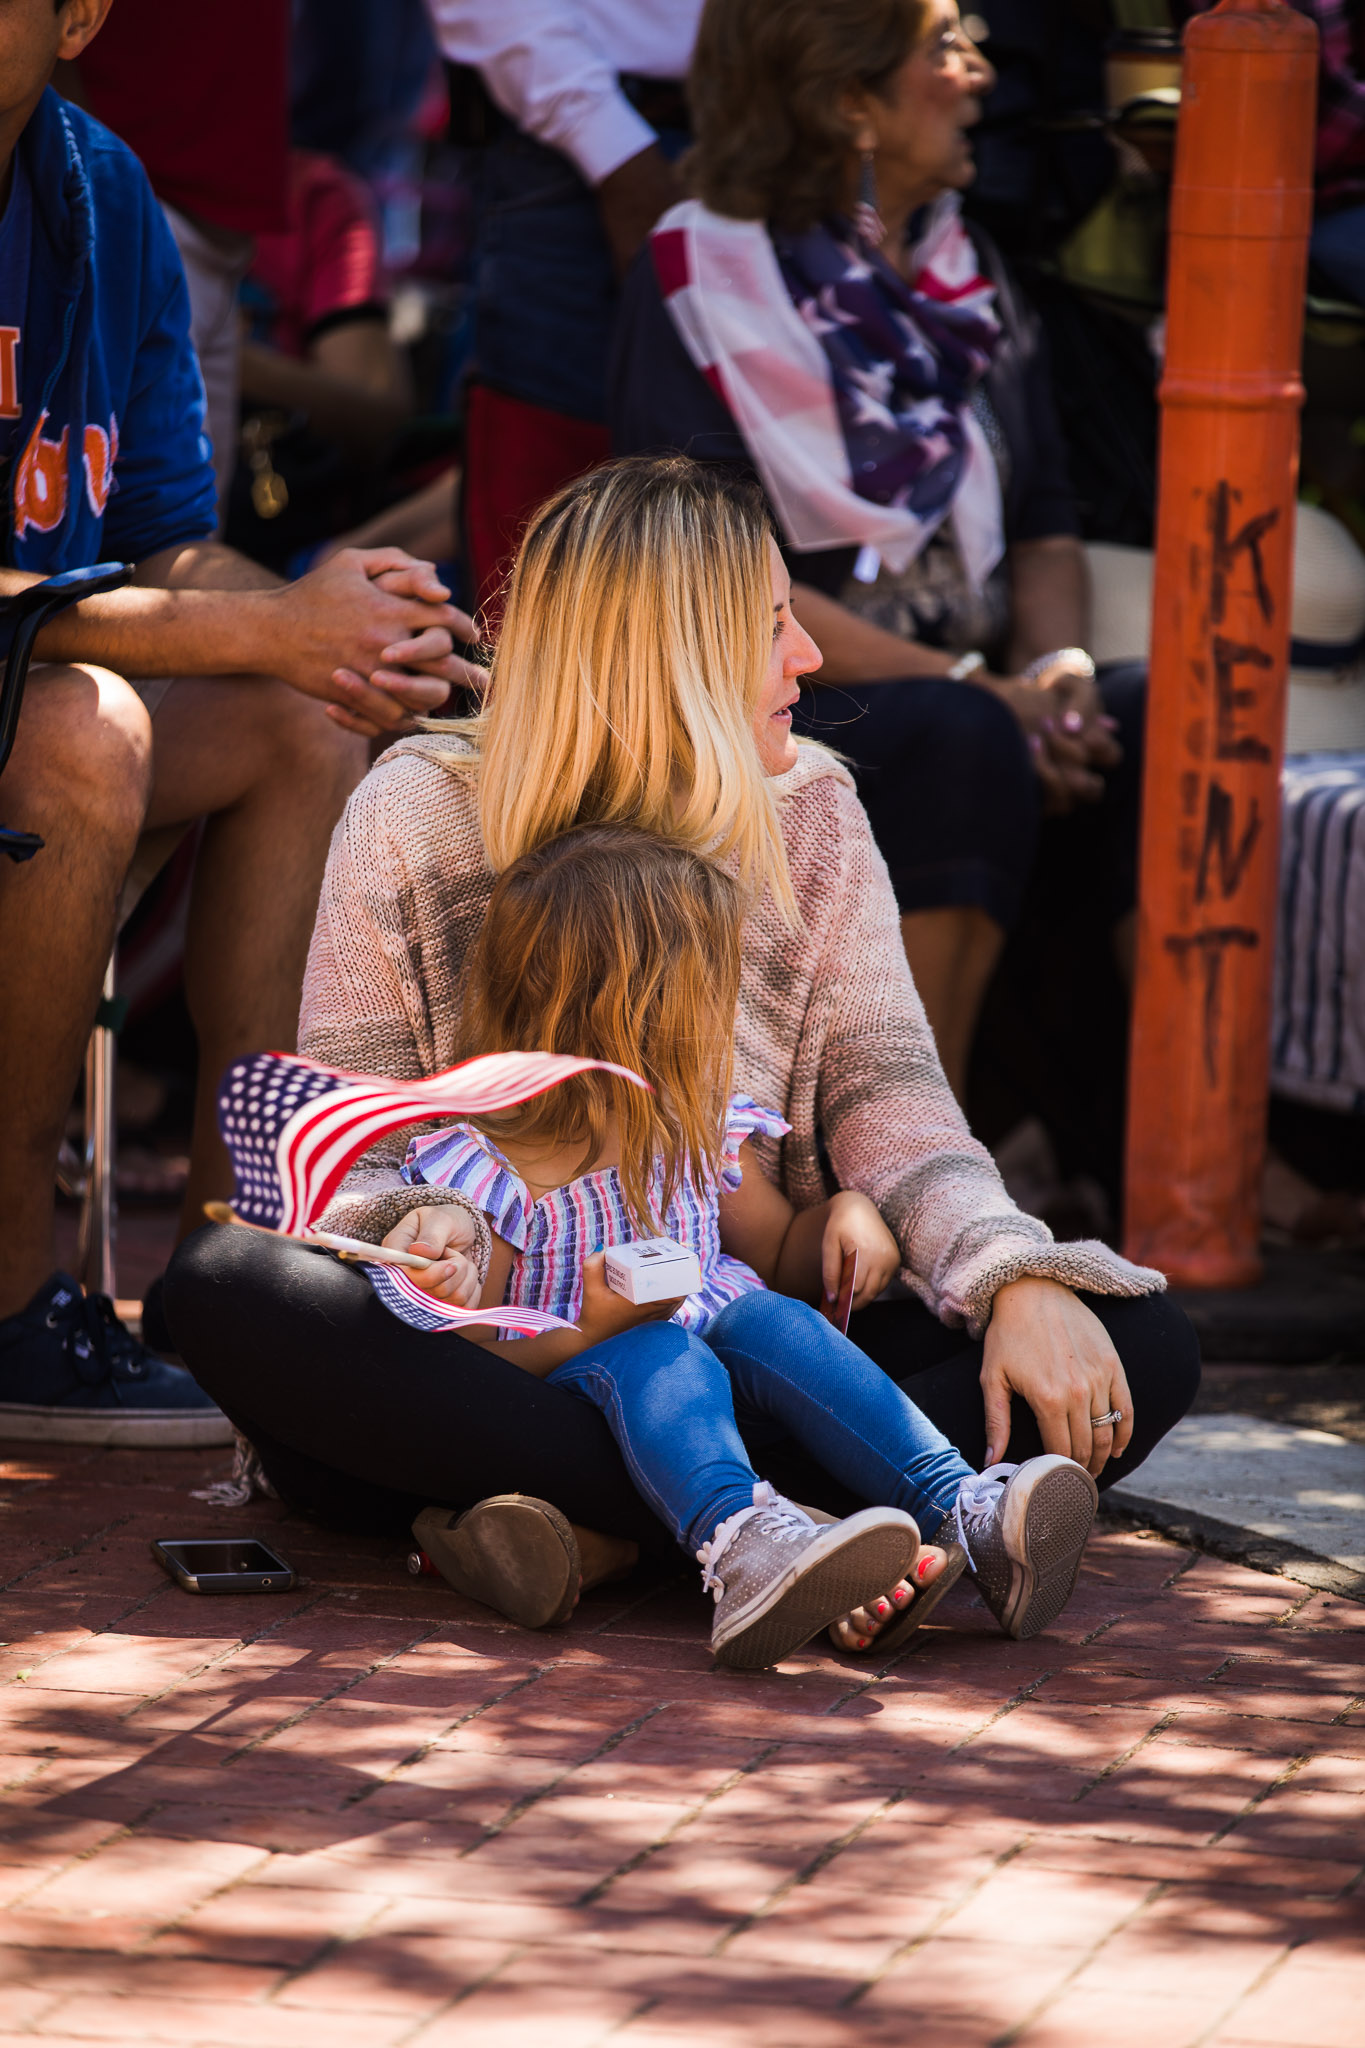 Archer_Inspired_Photography_Morgan_Hill_California_4th_of_july_parade-164.jpg